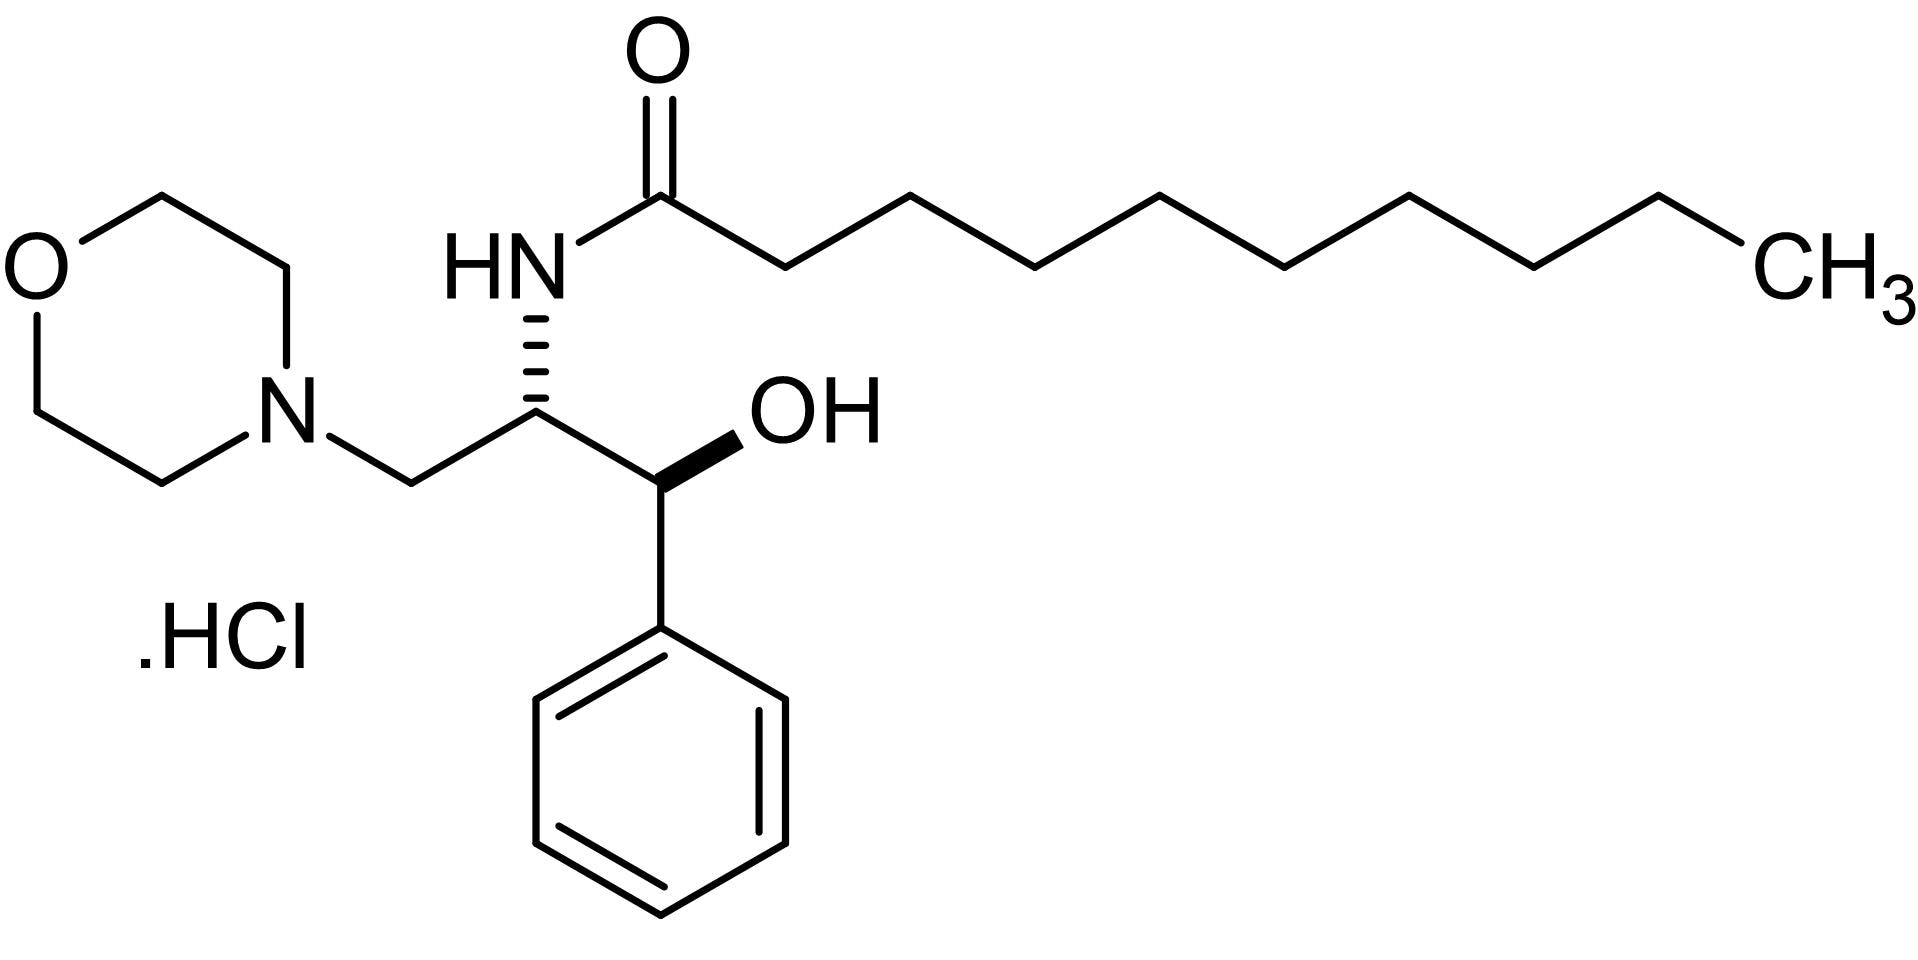 Chemical Structure - D,L-threo-PDMP, Glucosylceramide synthase inhibitor (ab144022)